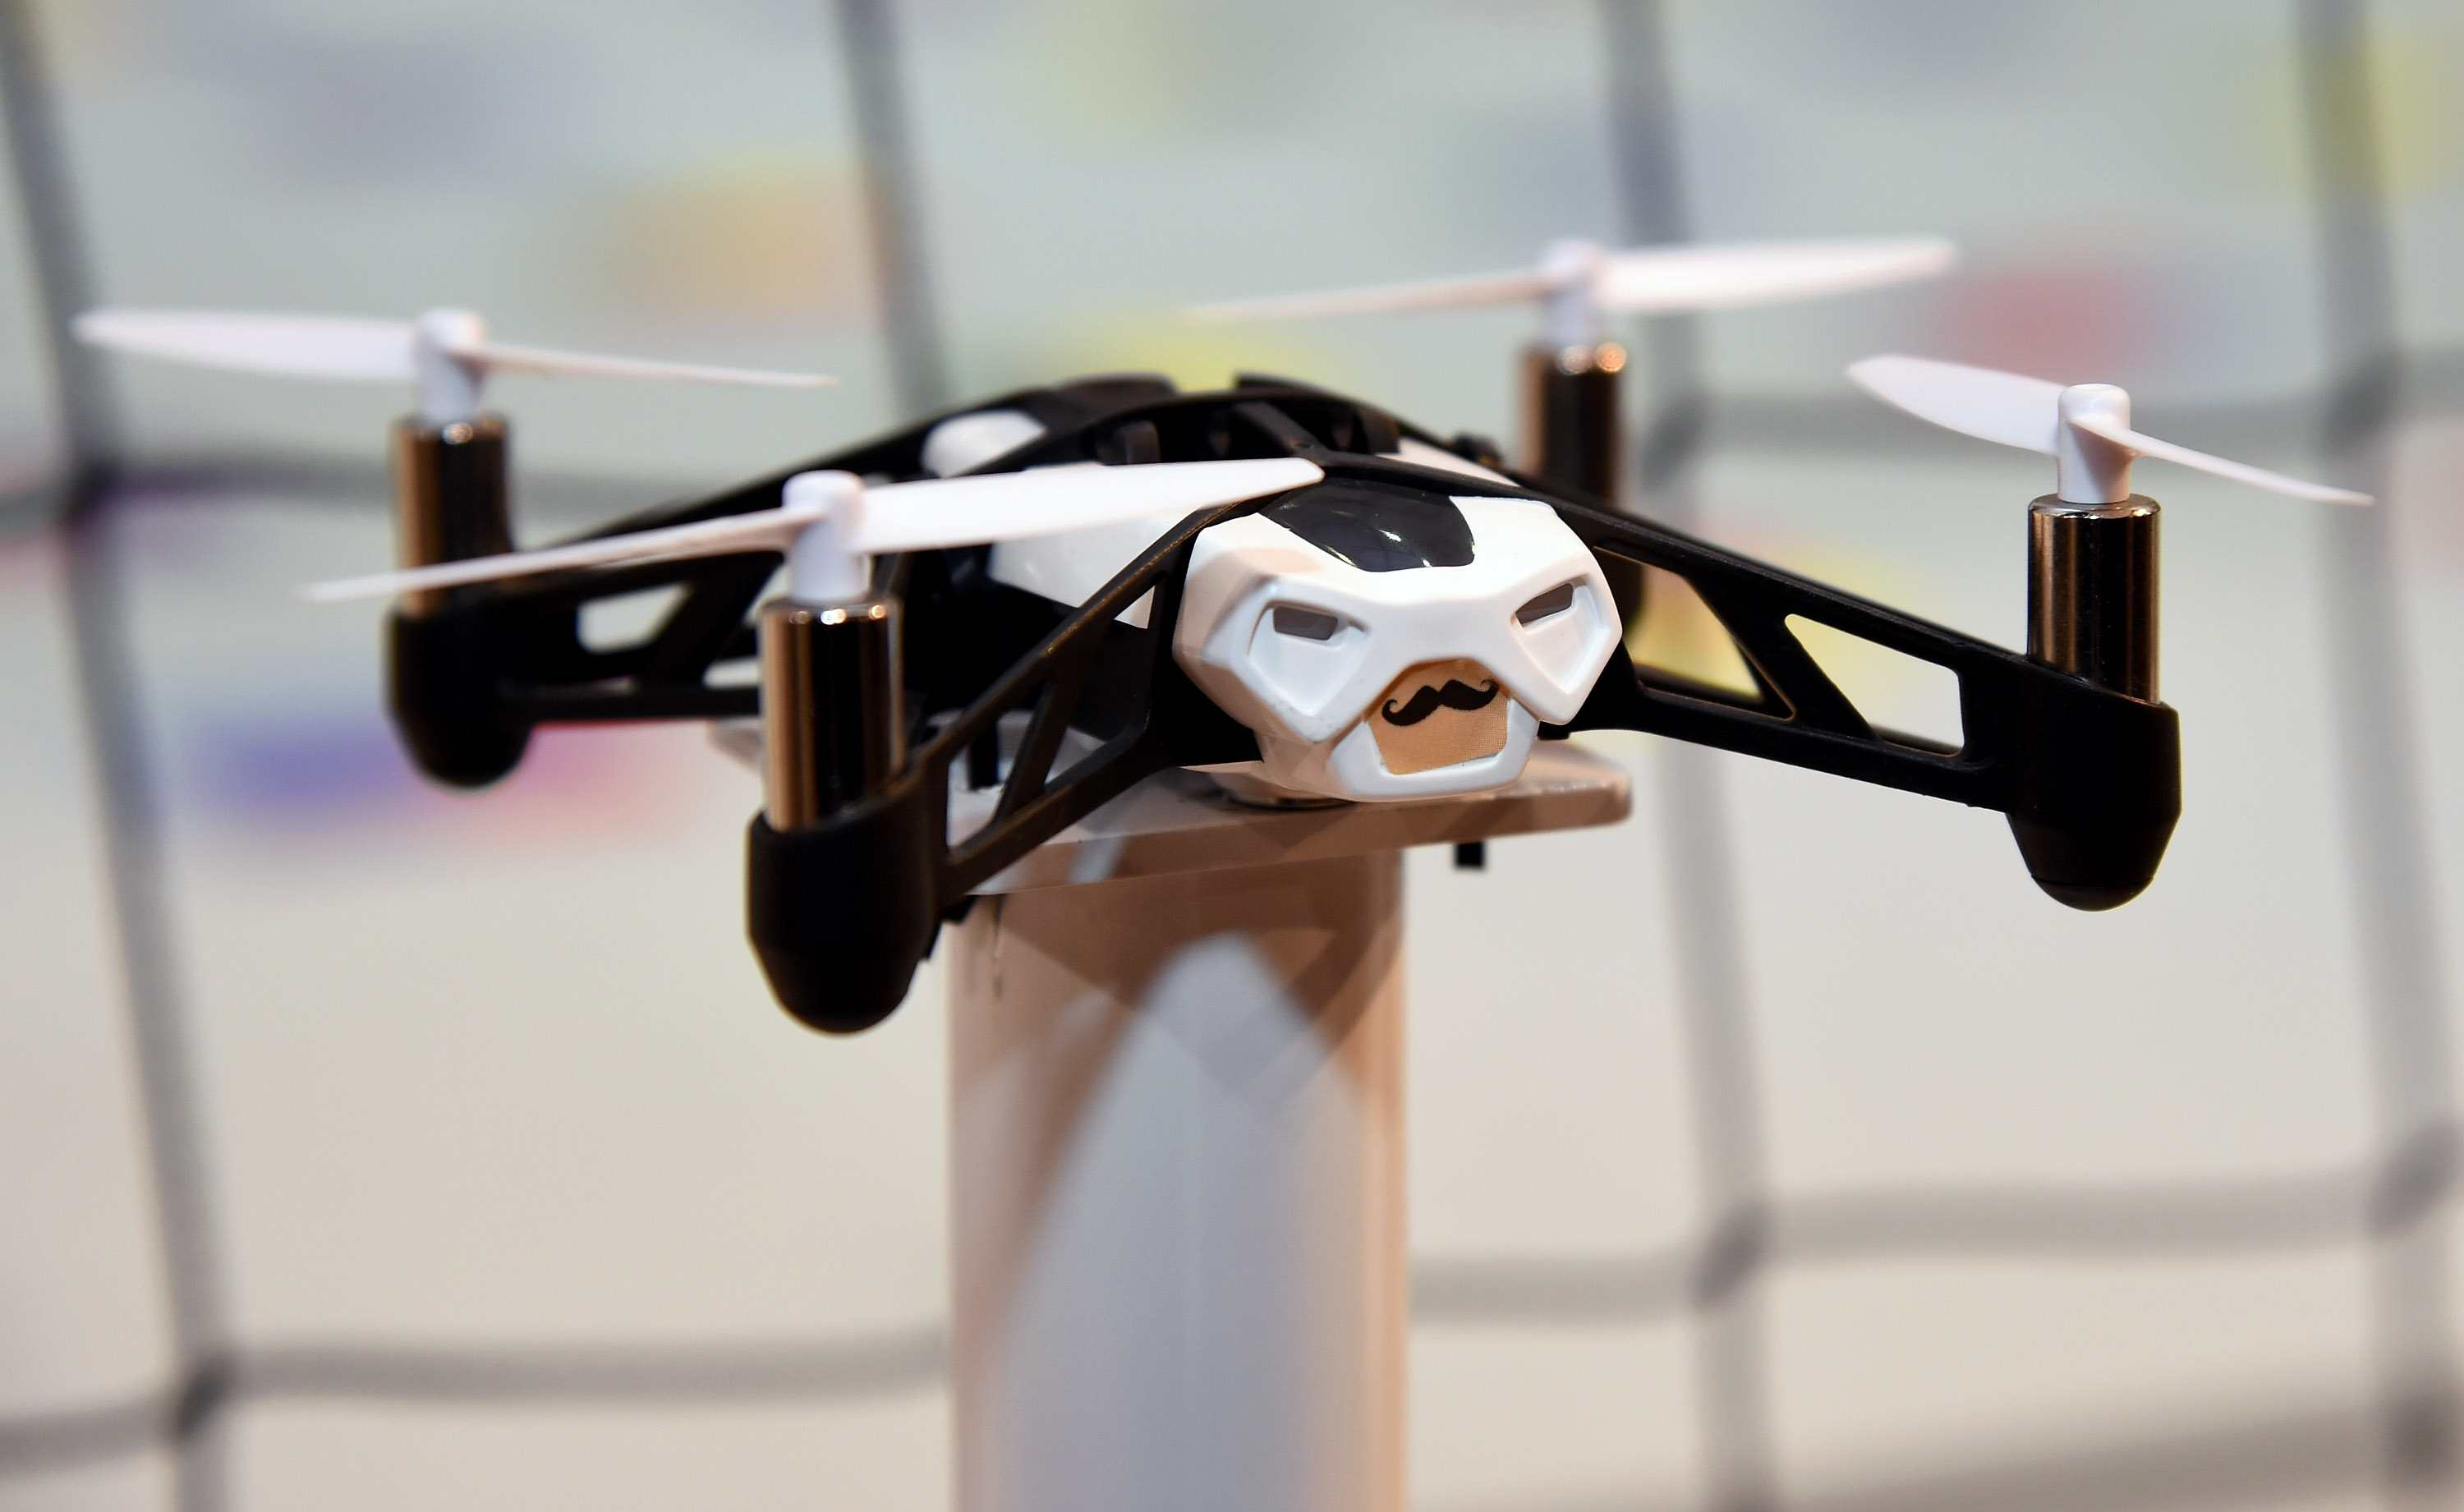 Parrot MiniDrone - Insurance Options For Drones